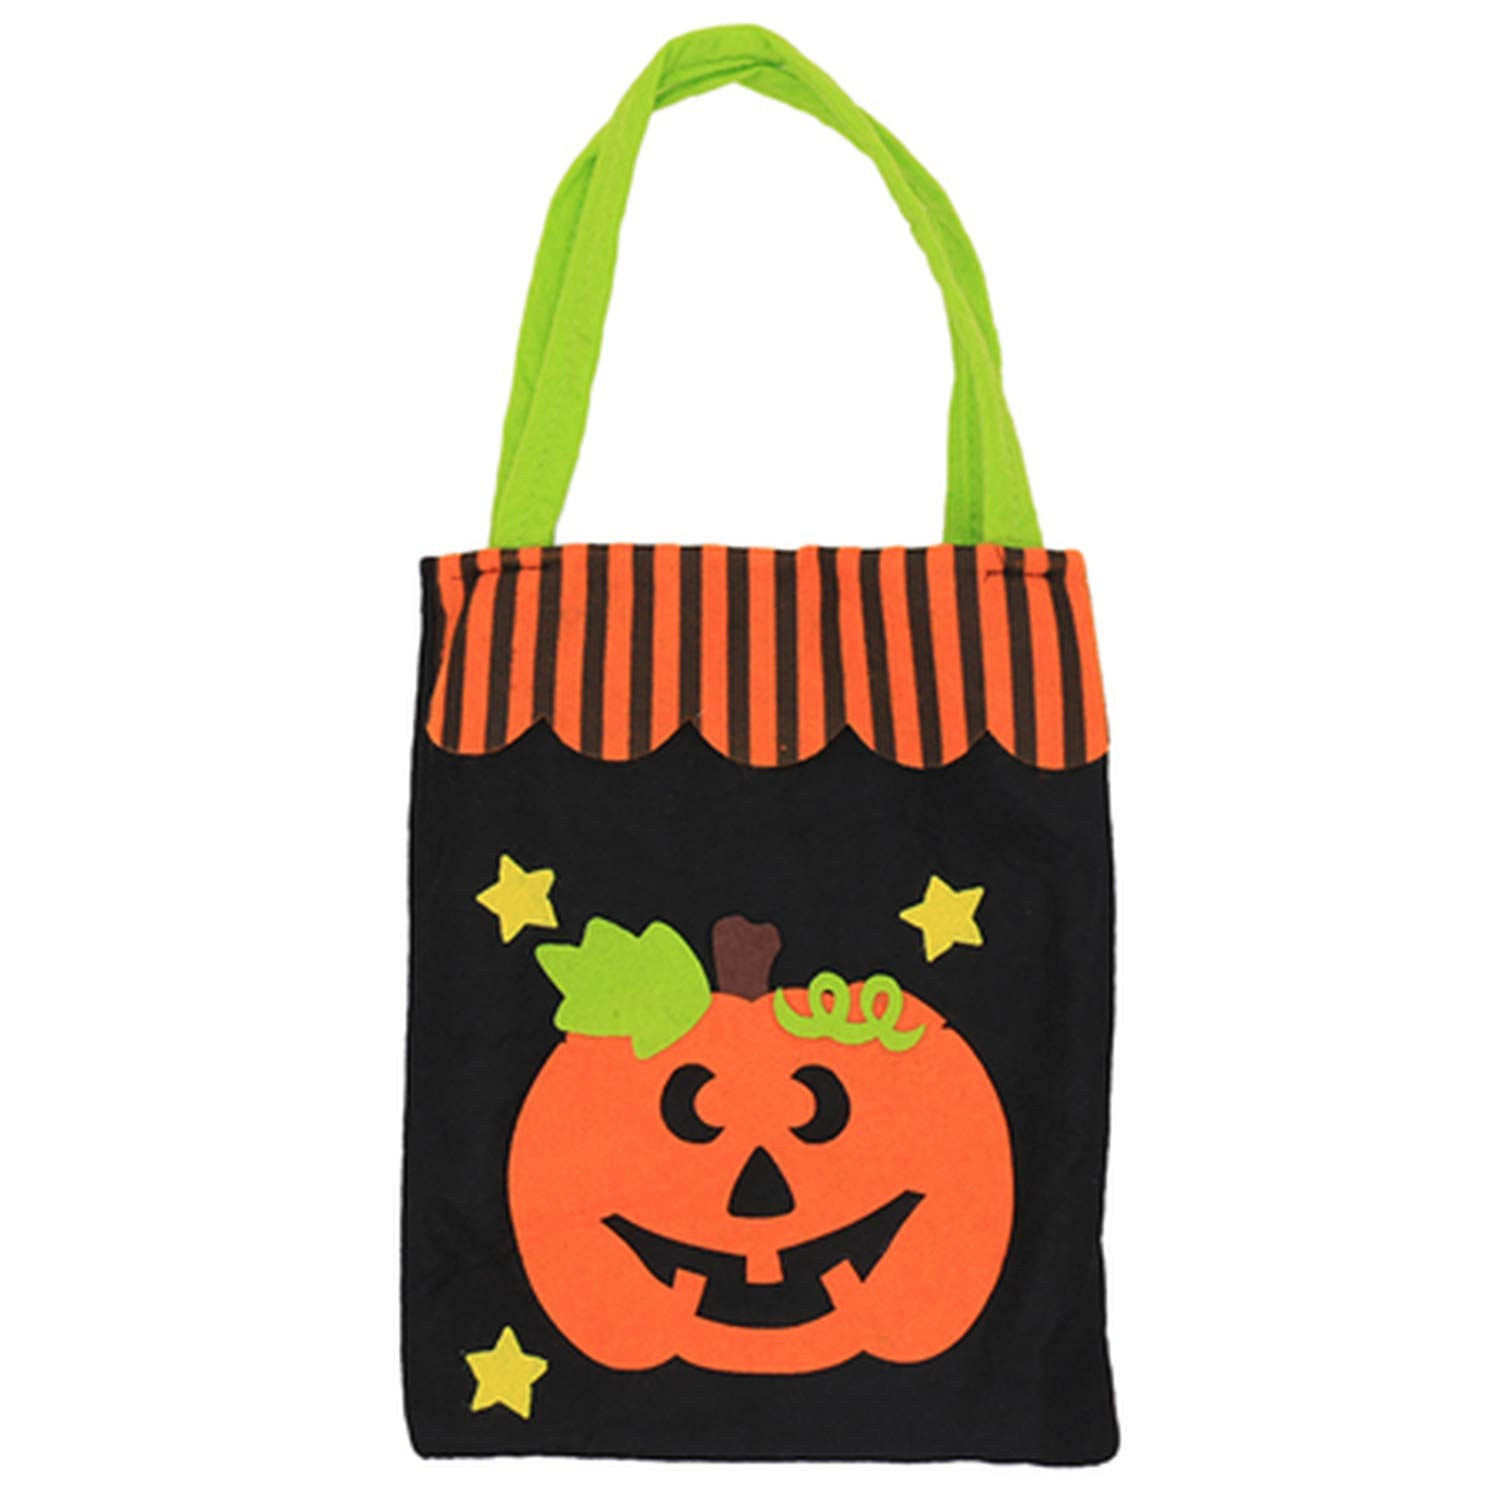 Halloween Candy Bag Gift Bags Pumpkin Trick Or Treat Bags Sacks Gift for Kids Event Party,D